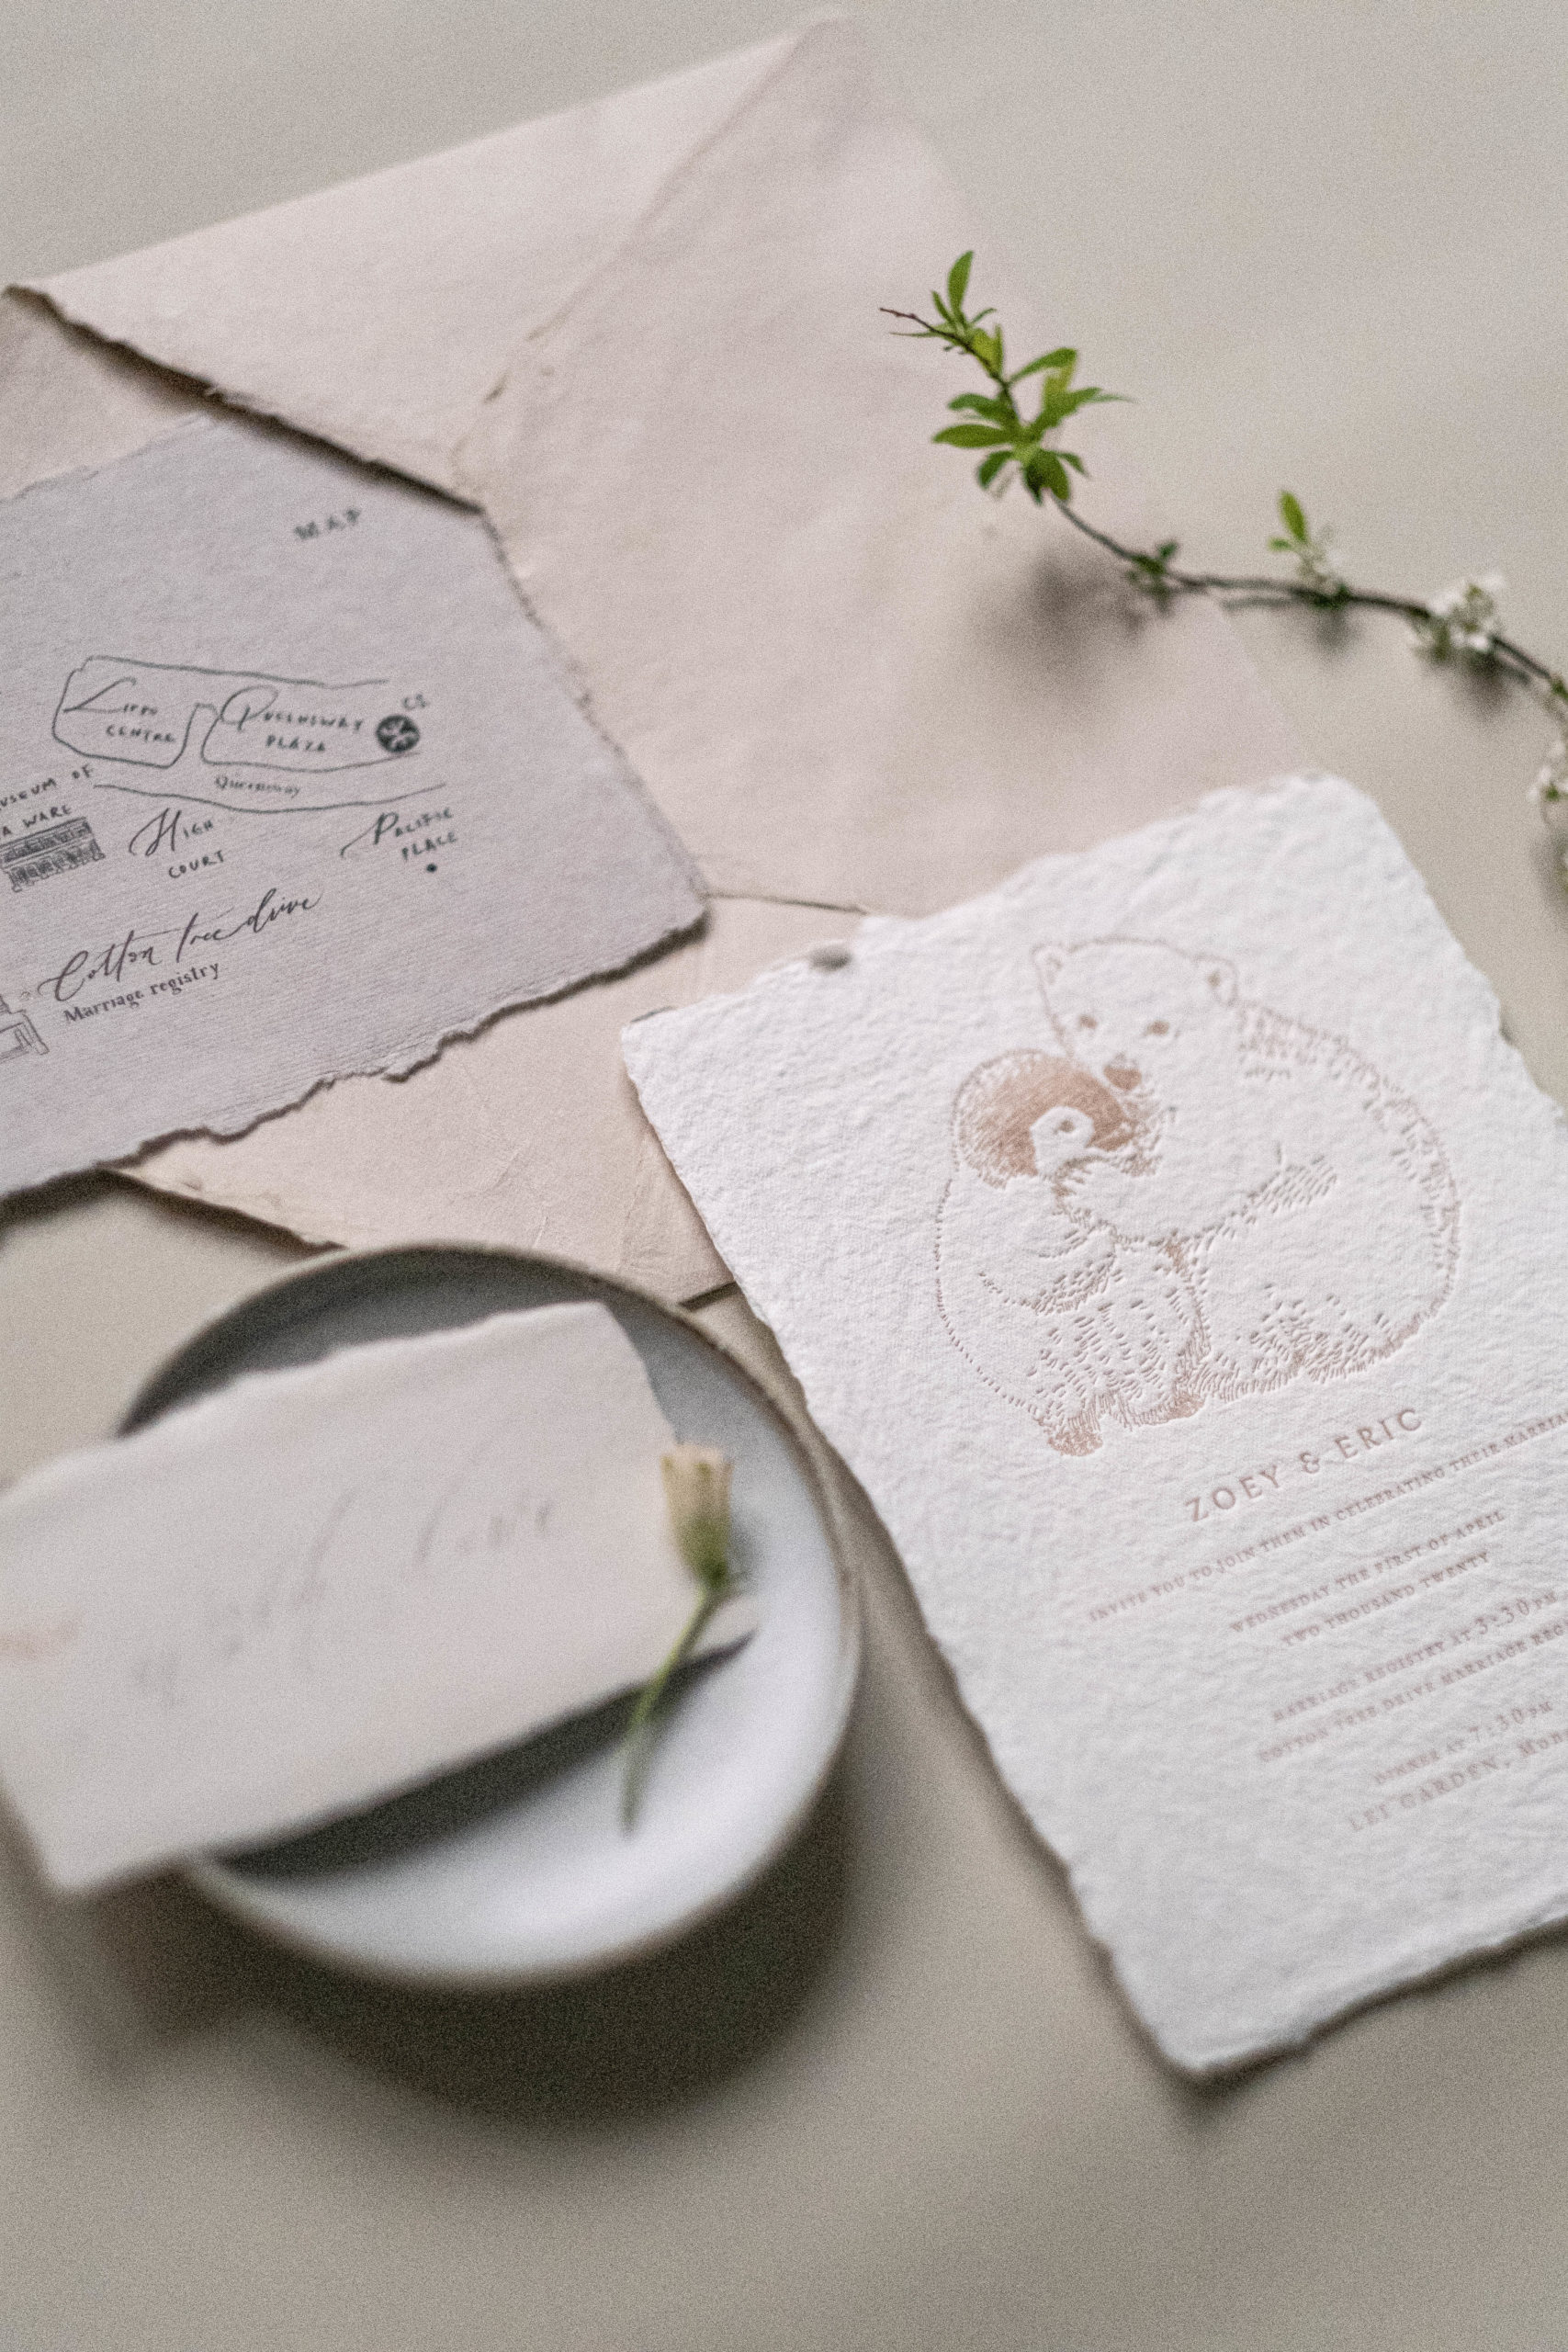 polar bear and penguin wedding suite in letterpress in blush color-cotton rag paper